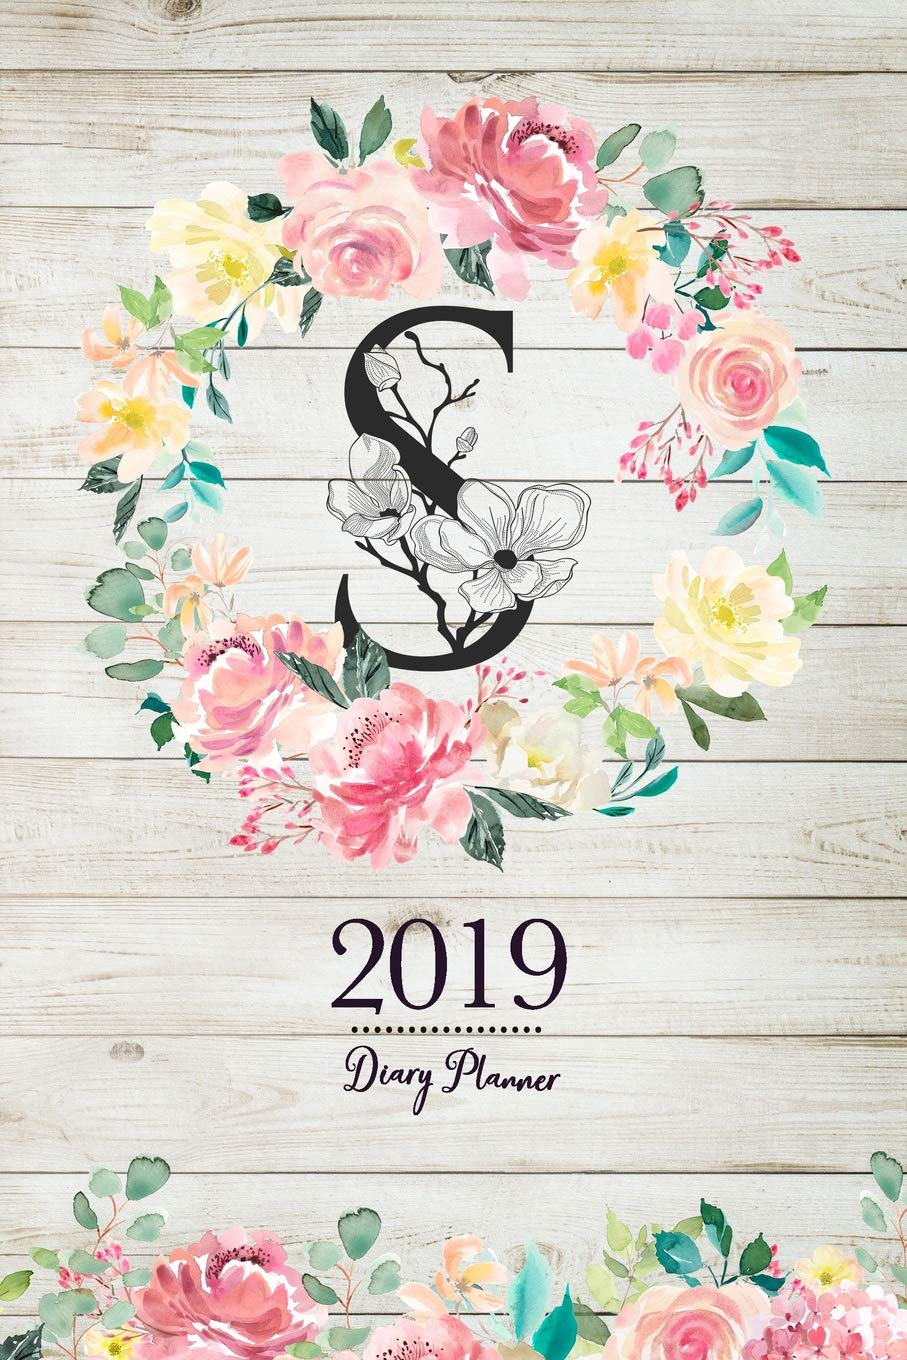 2019 diary planner: Cute Watercolor Flowers January to December 2019 Diary Planner With S Monogram on Light Wood Background.